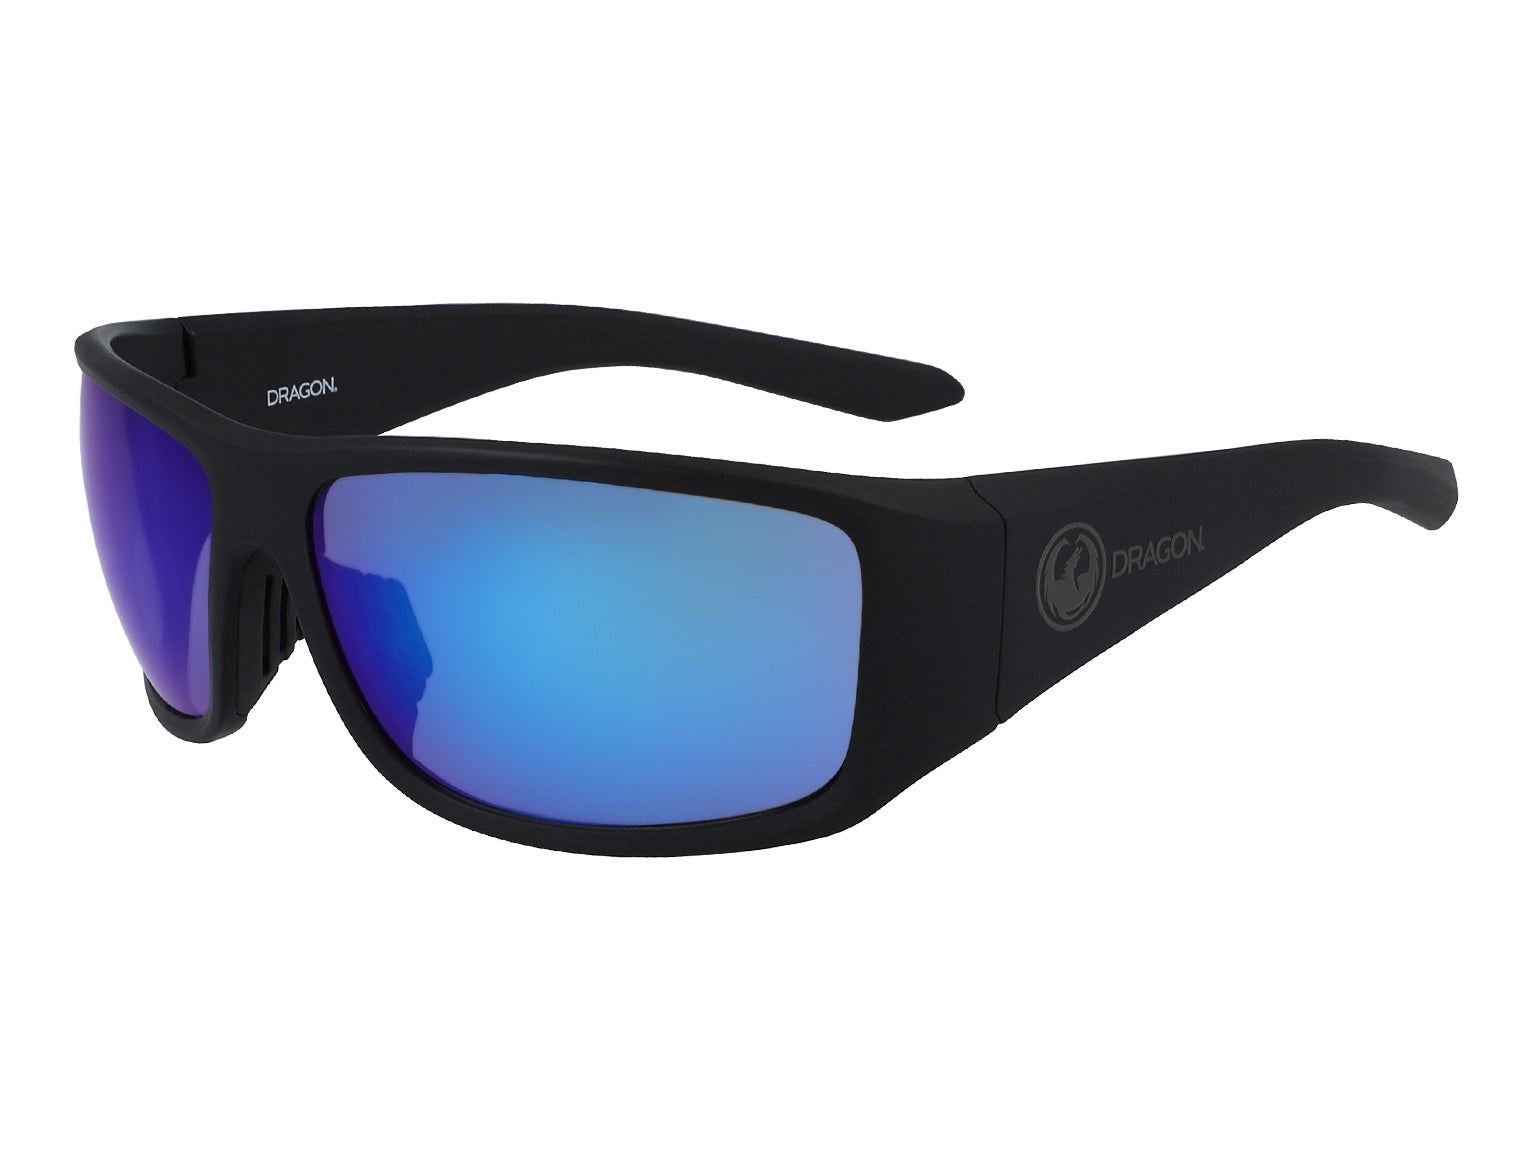 JUMP - Matte Black with Lumalens Blue Ionized Lens